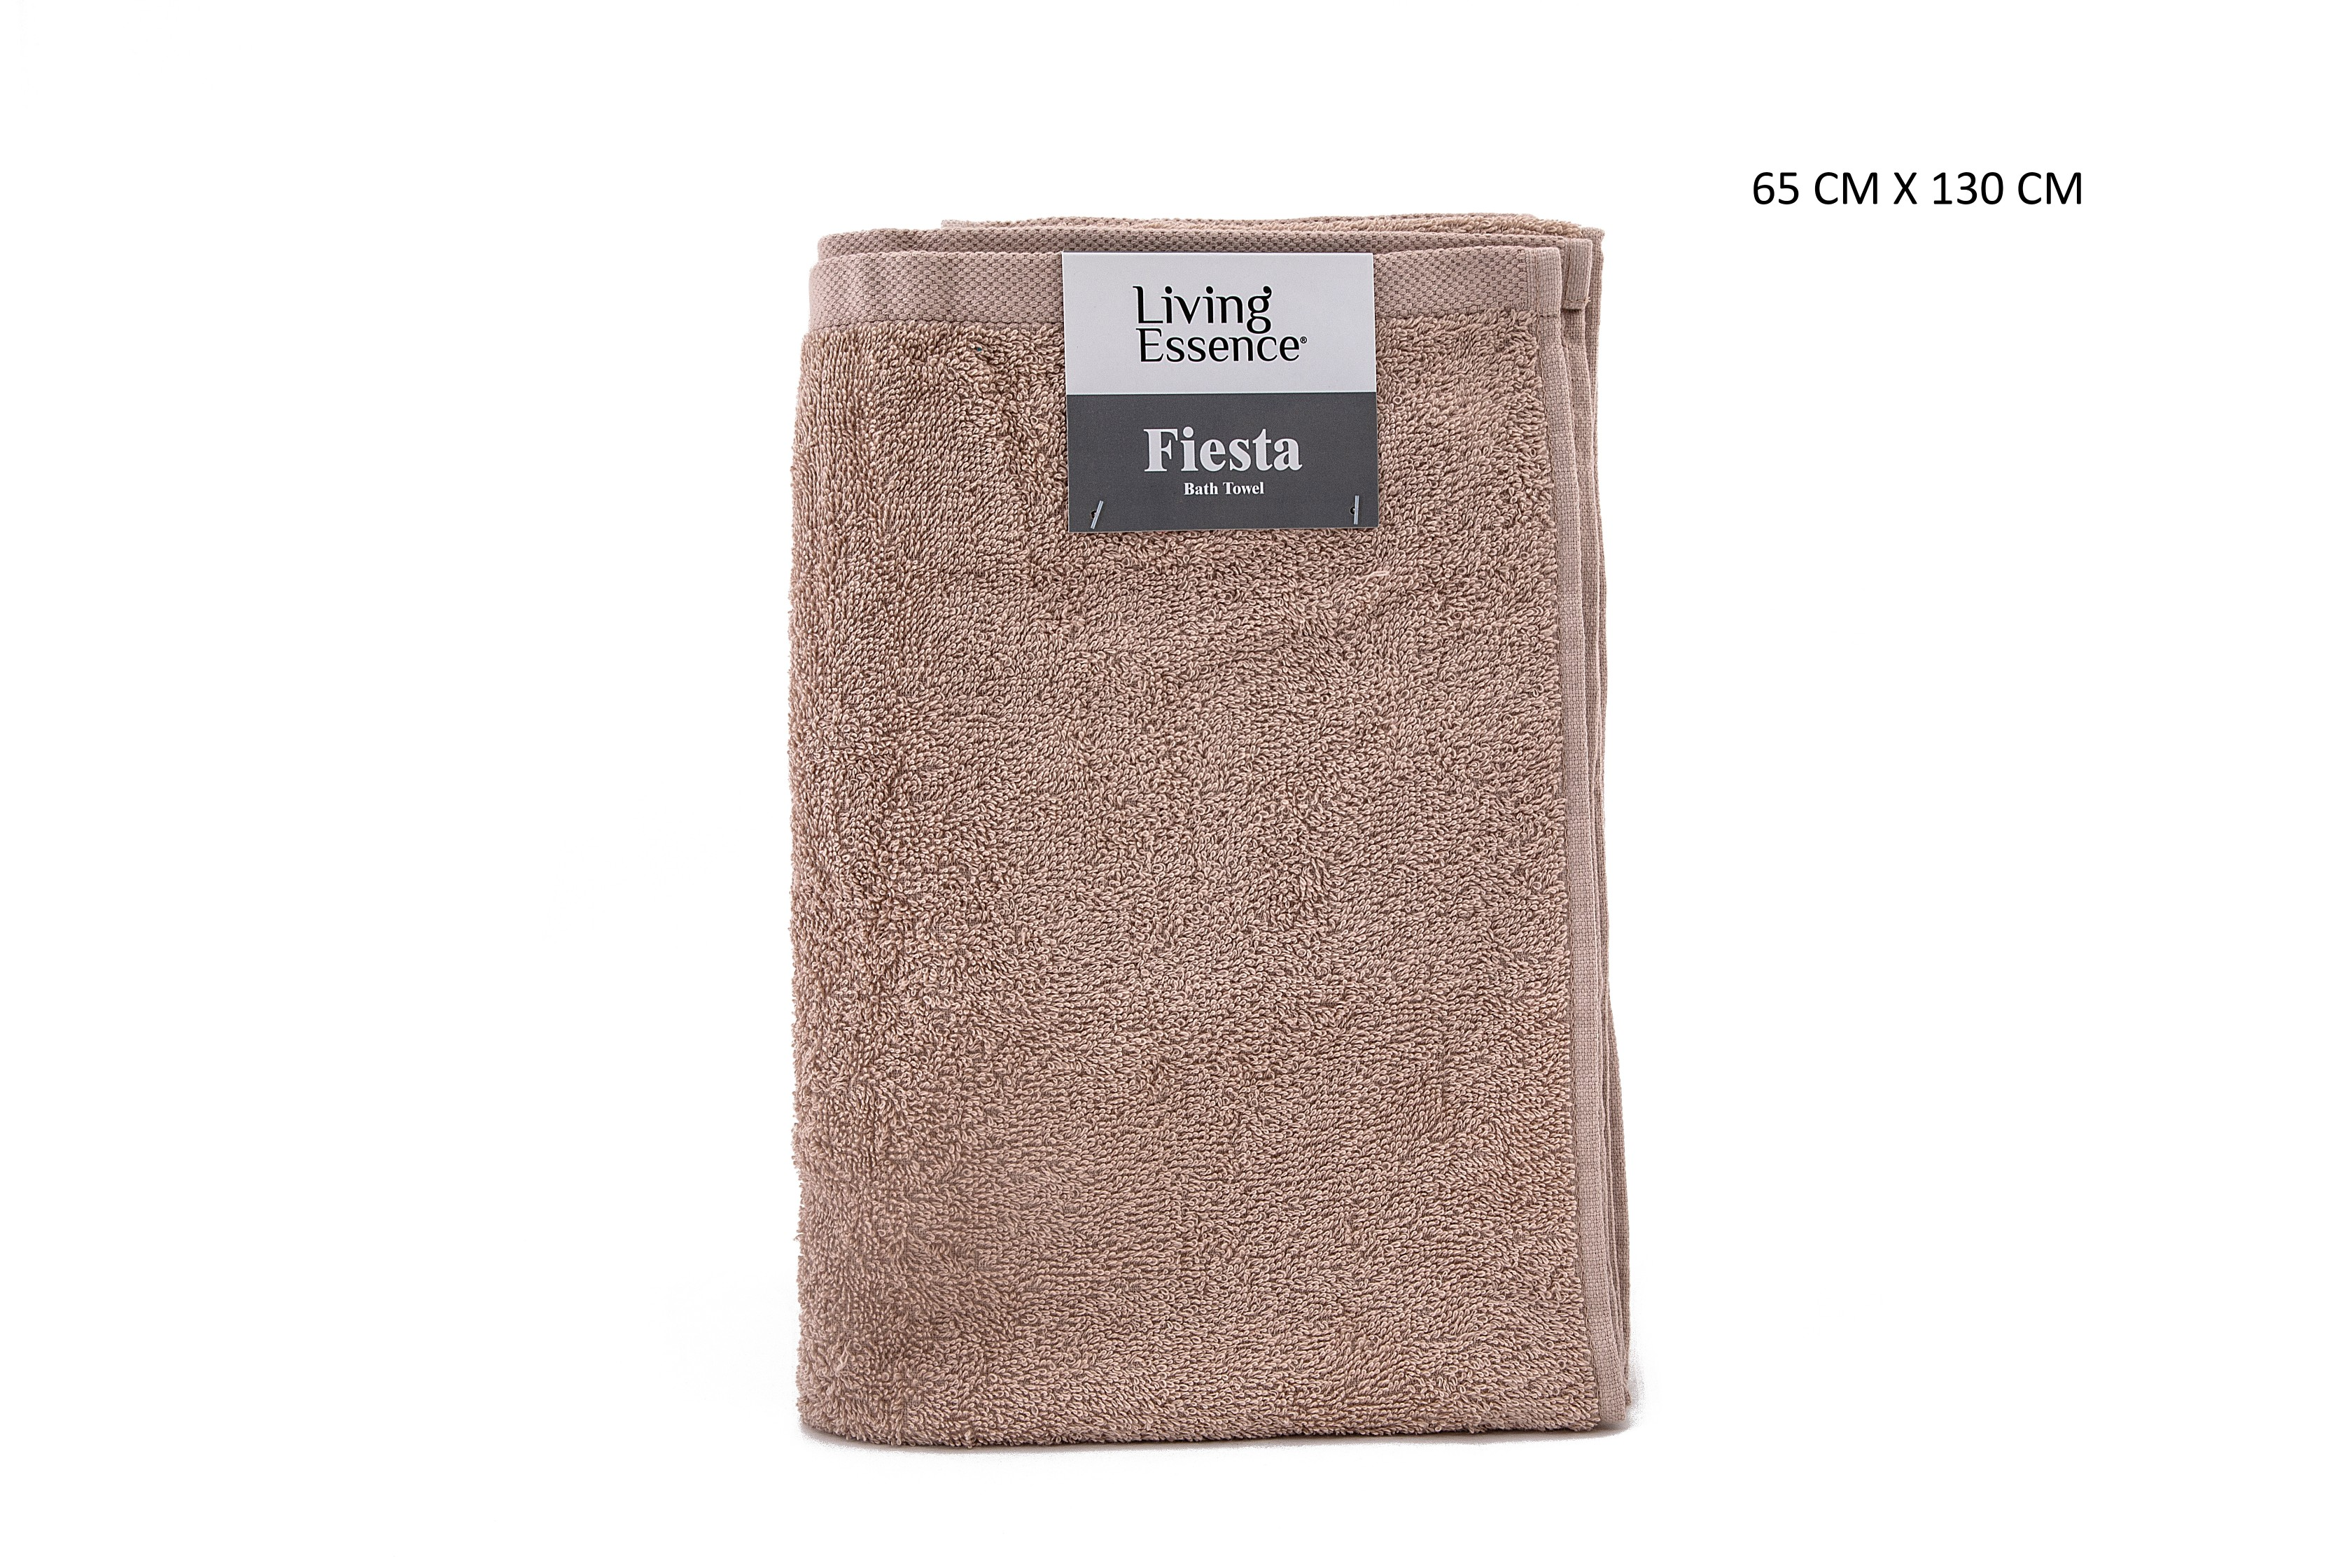 Fiesta Bath Terry Towel Cotton Bath Towels in Beige Colour by HomeTown